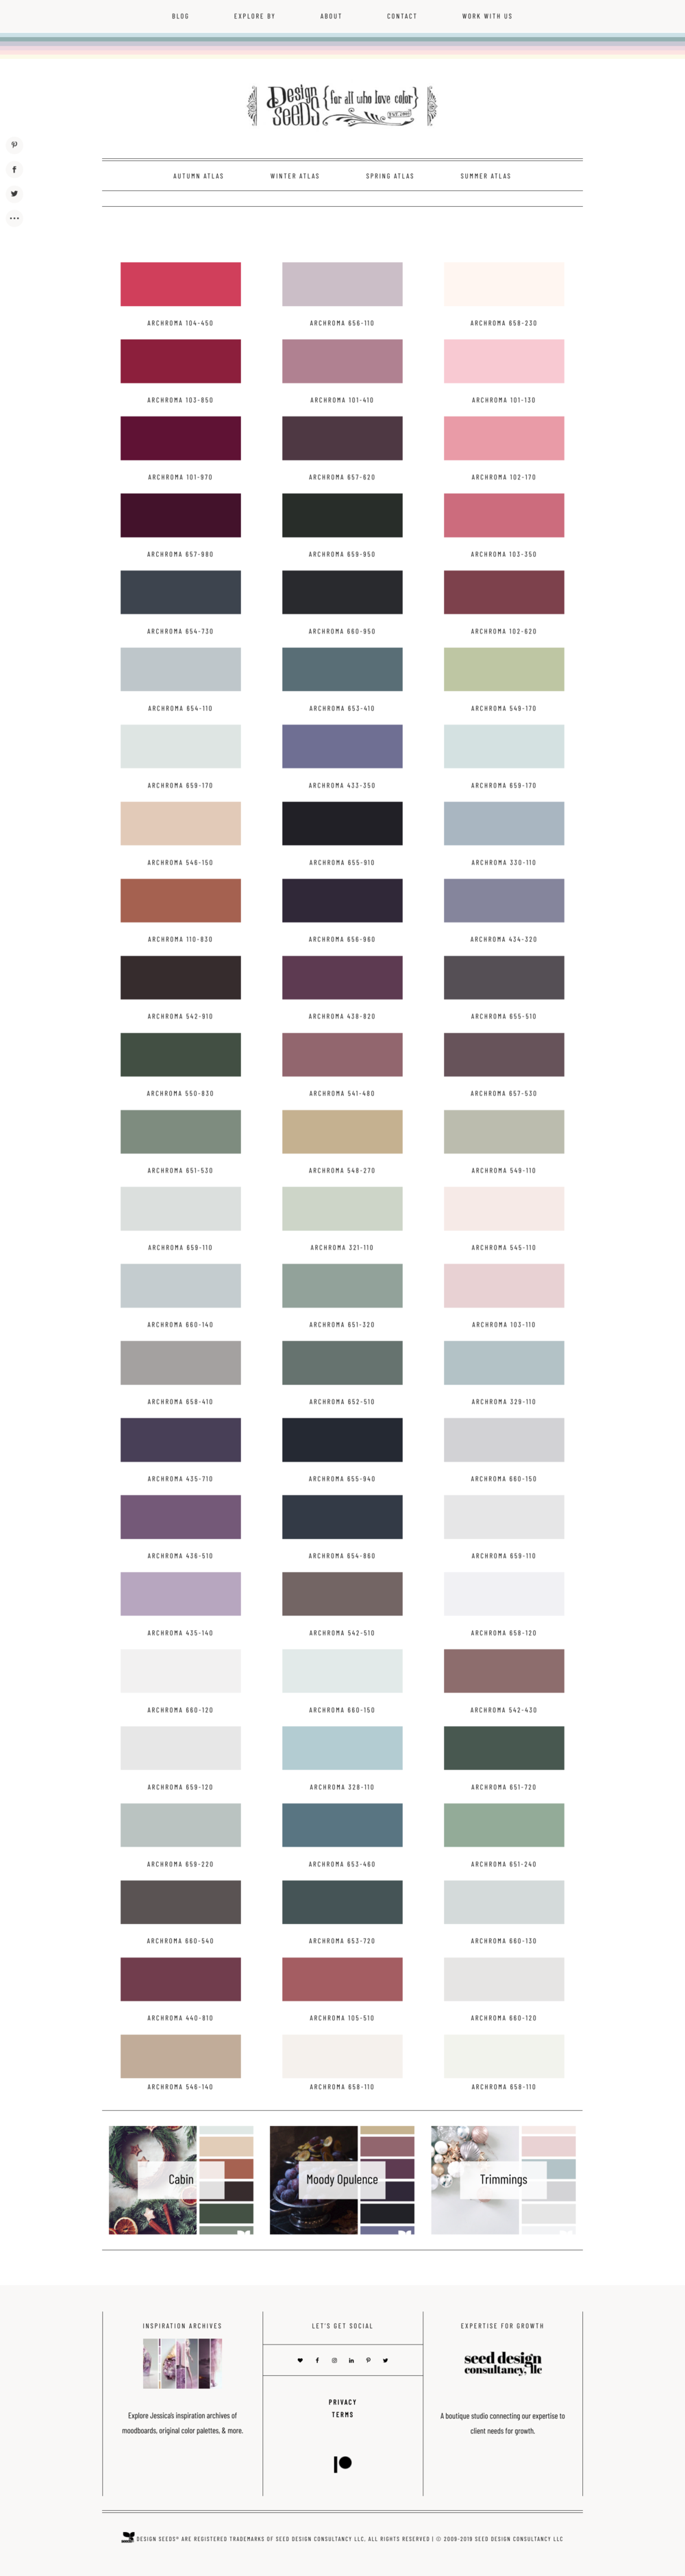 seed; Winter | Issue no.3 | palette overview